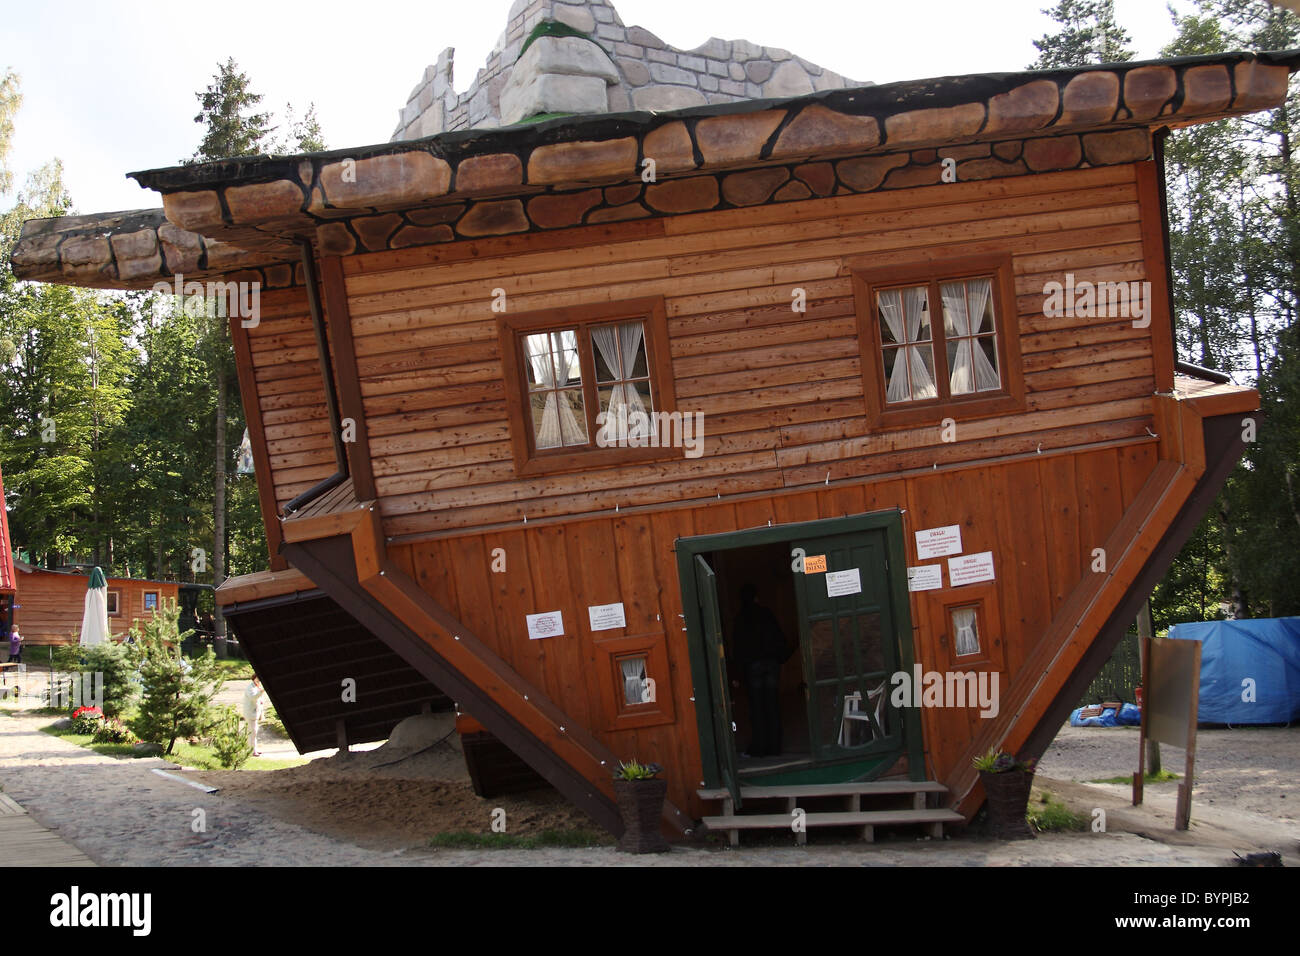 Upside down house in open air museum in szymbark kashubia The upside house